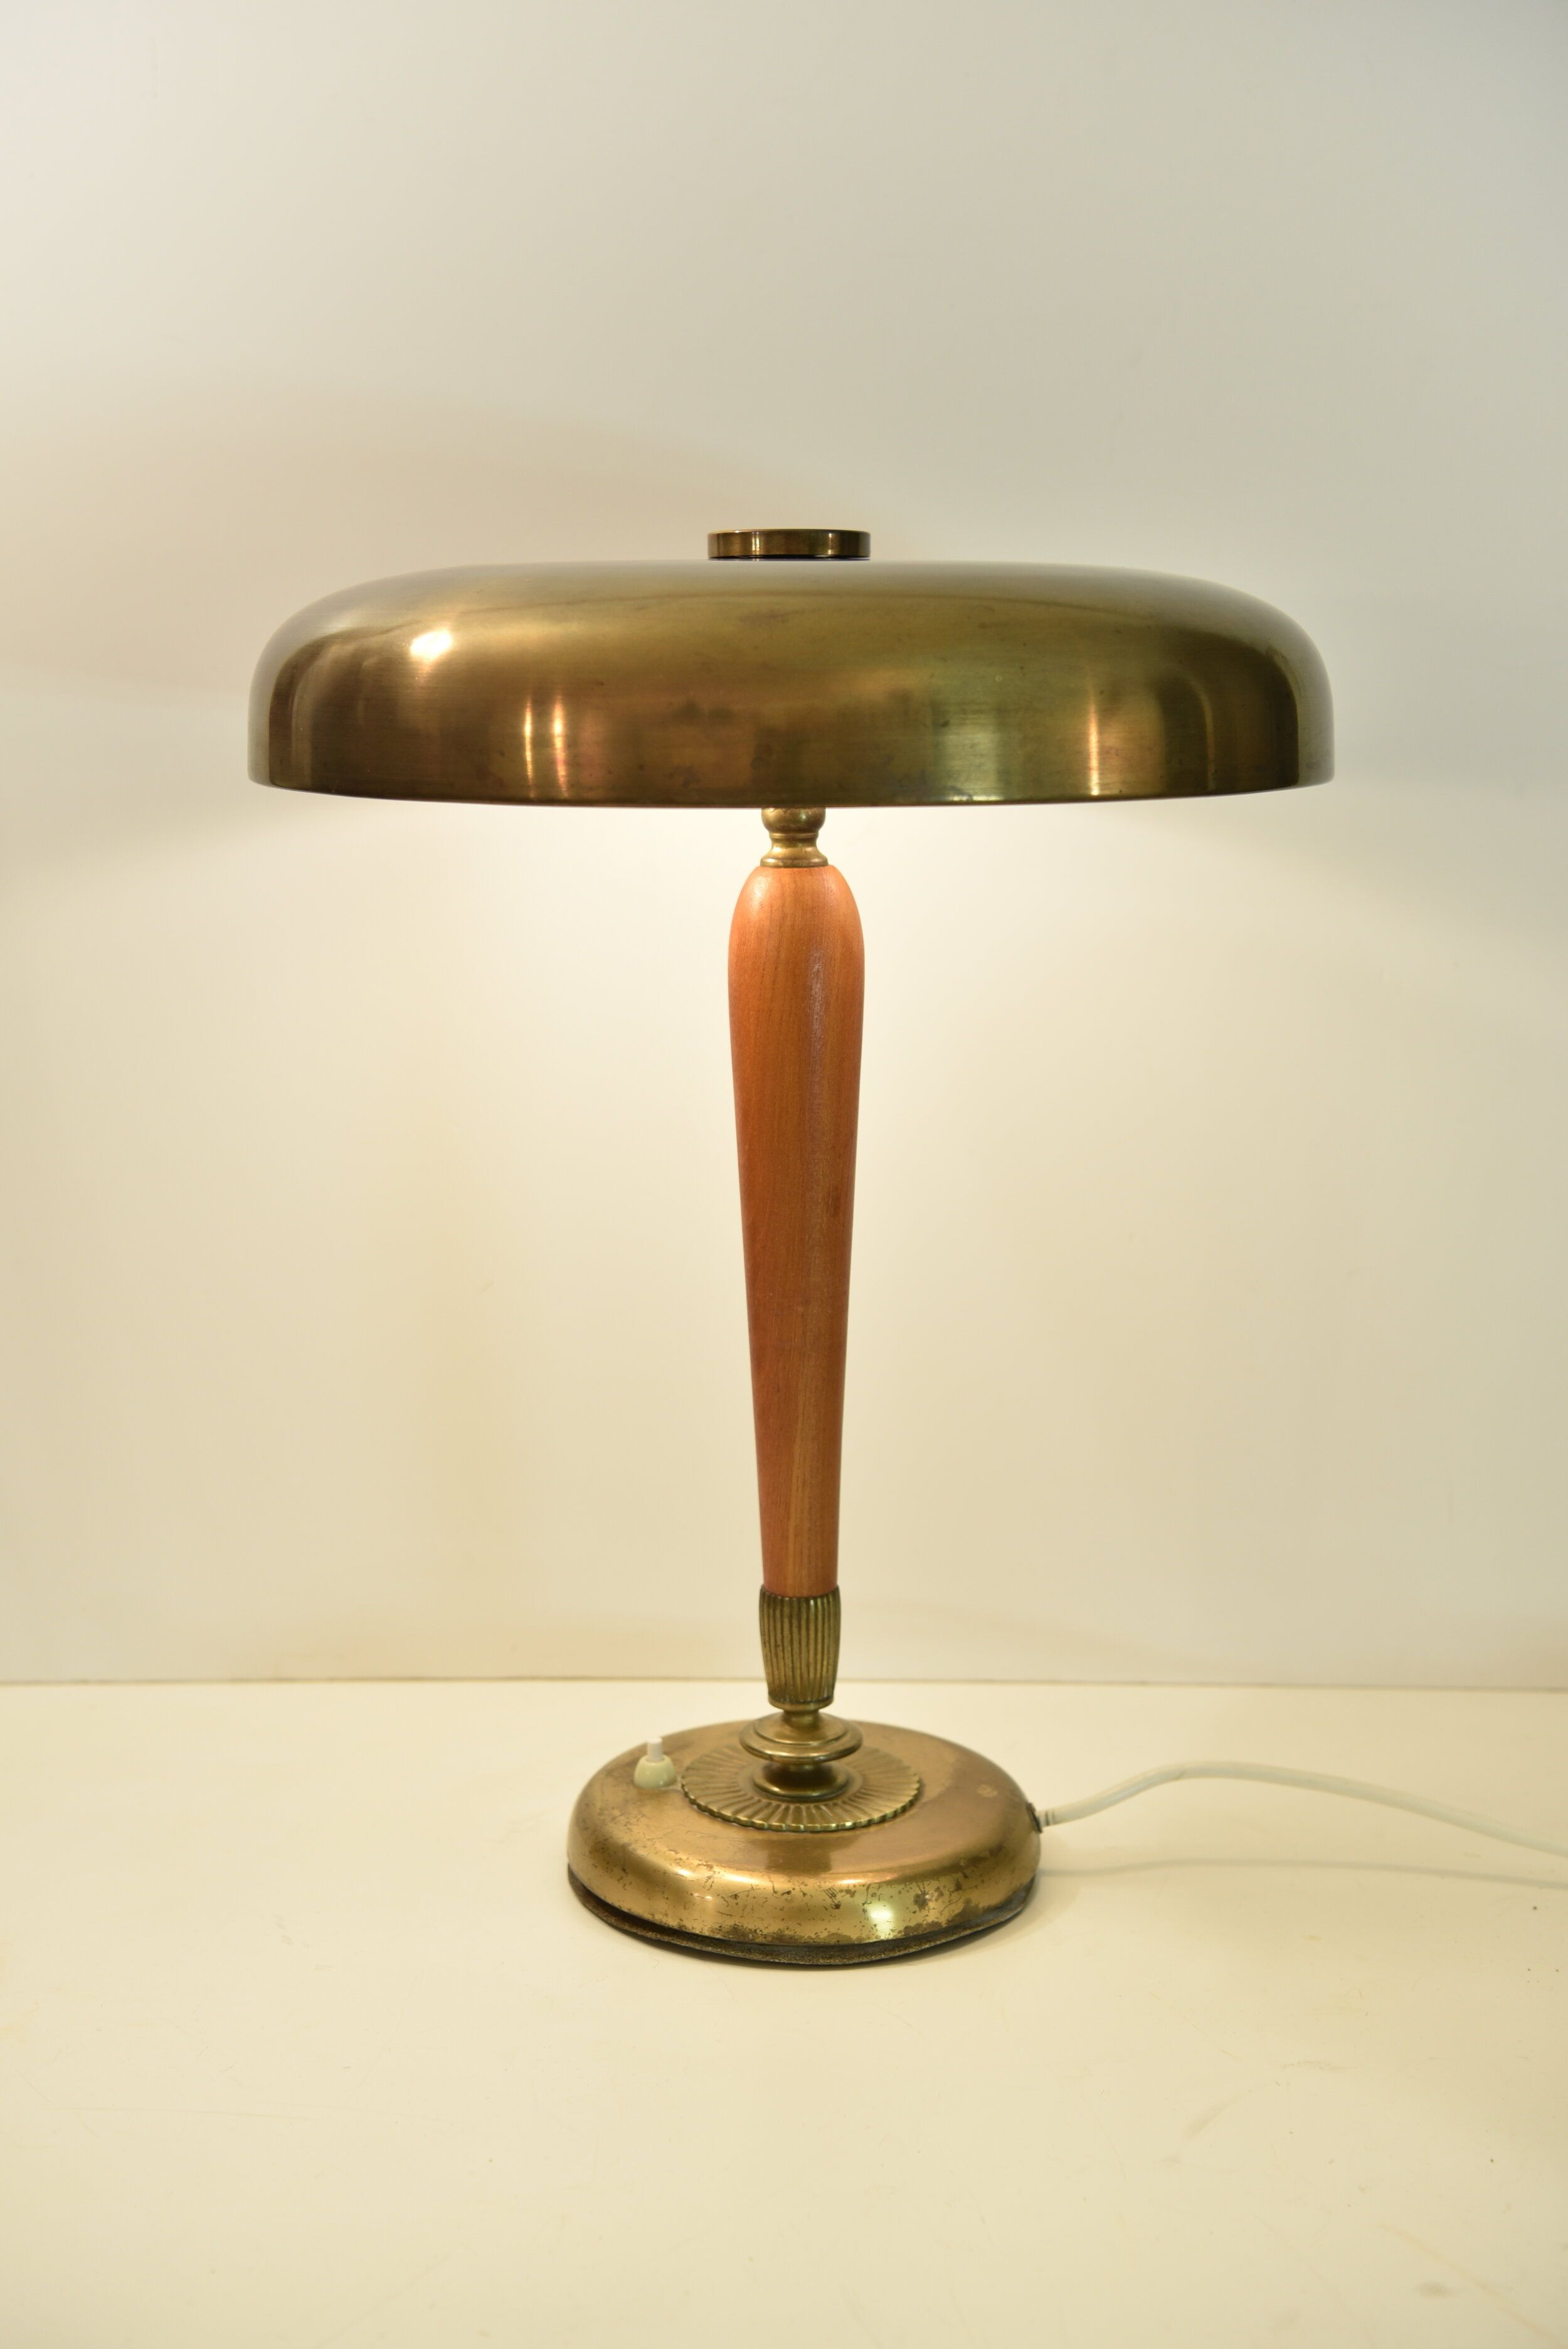 Large Swedish Art Deco Oak And Brass Table Lamp By Bohlmarks 1930